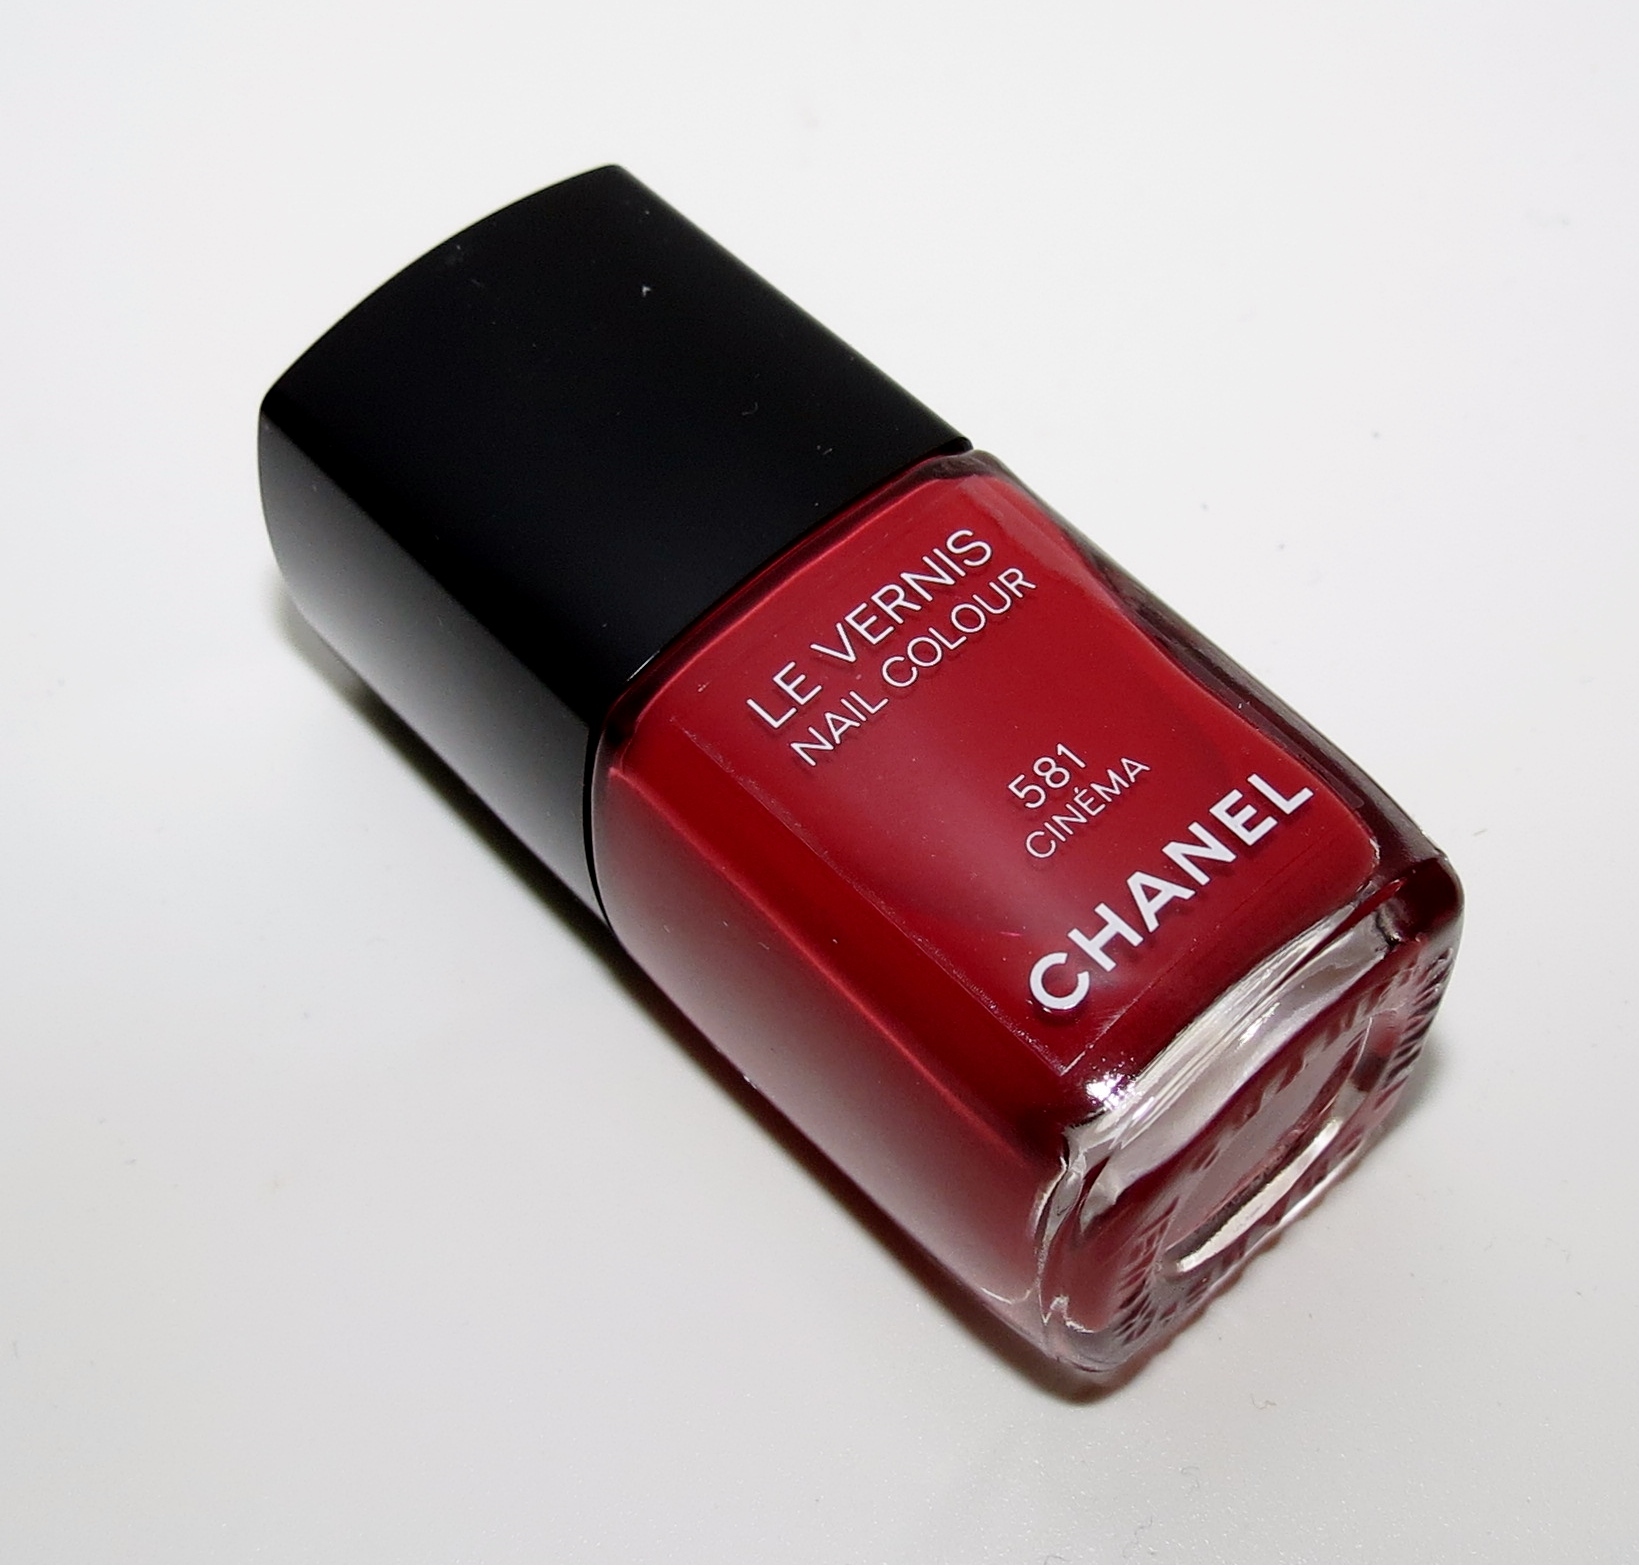 Vernis Nail: Chanel CINEMA 581 Le Vernis Nail Colour Swatches & Review